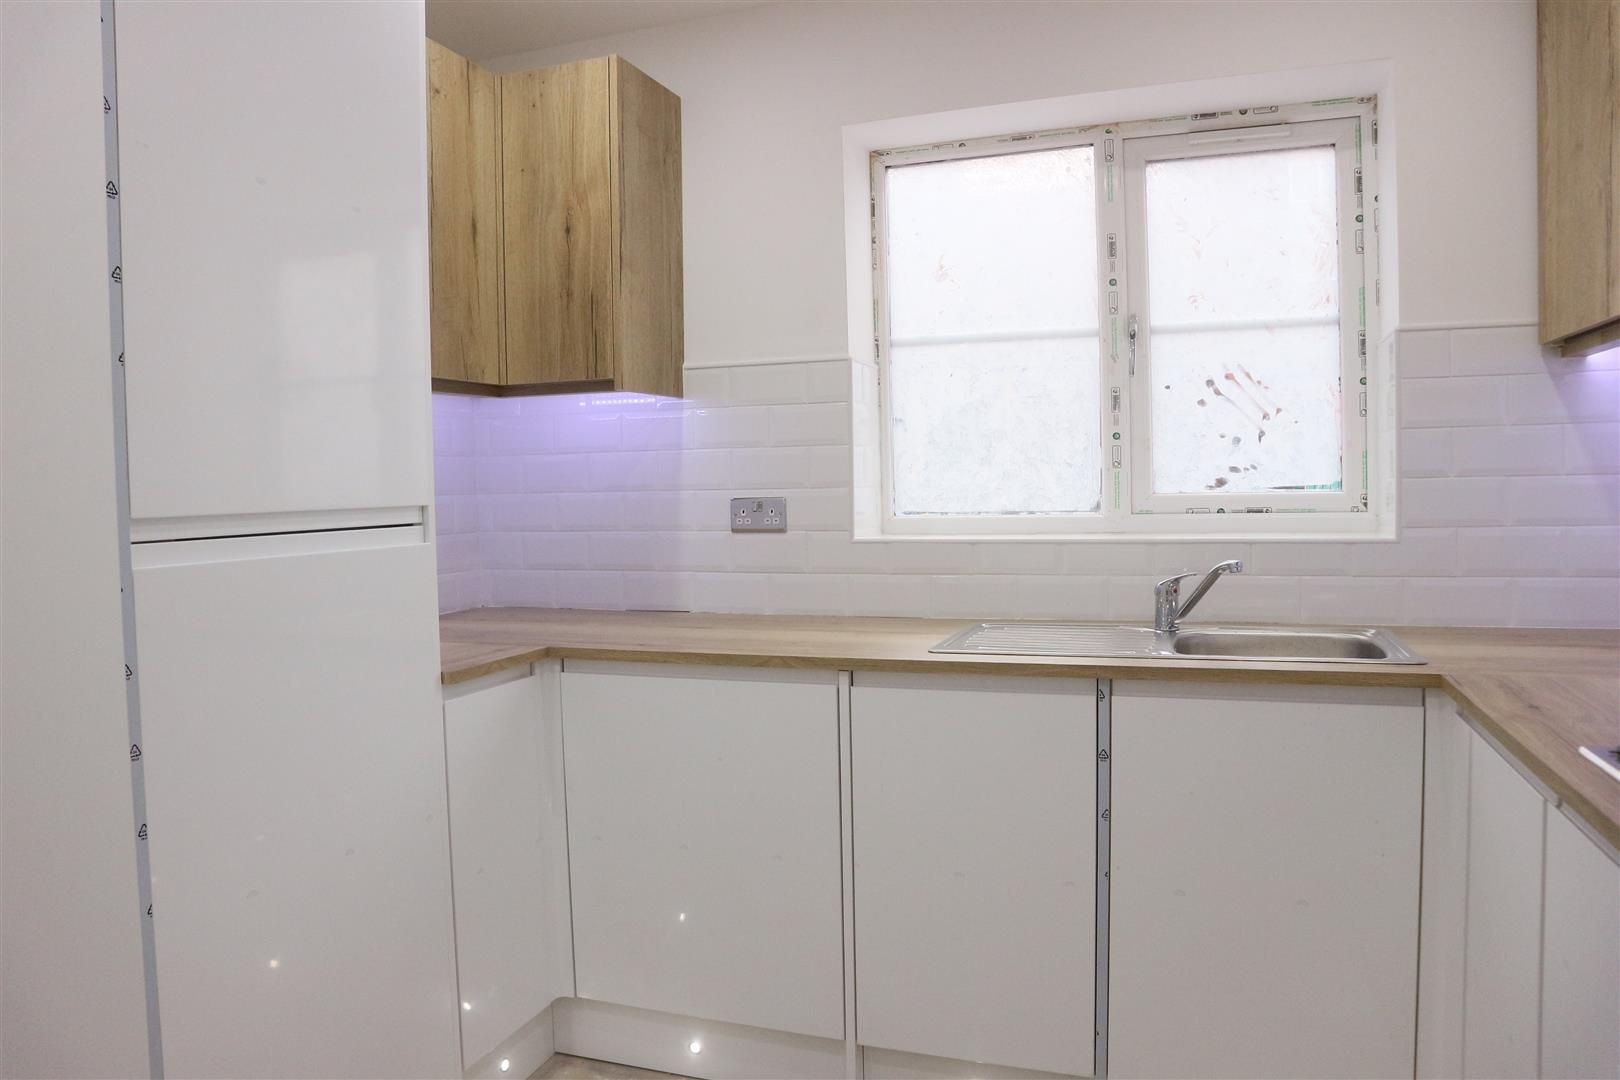 3 bed semi-detached for sale in Netherton 3